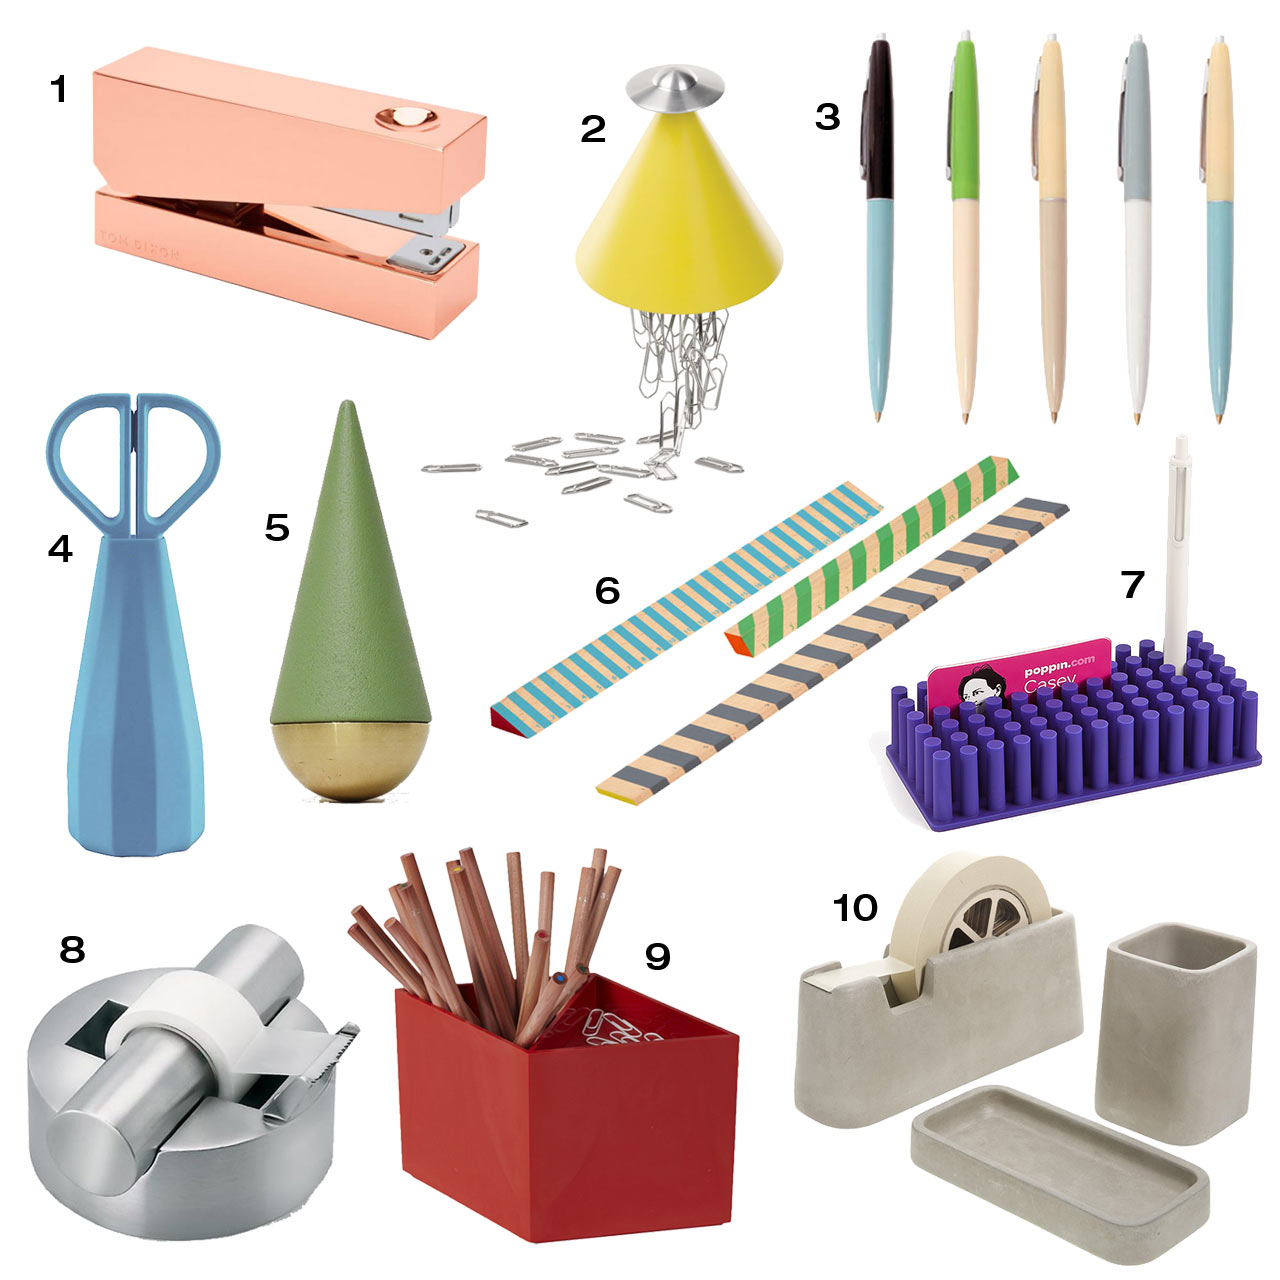 modern office desk accessories. 10 modern office supplies to up your desk game accessories